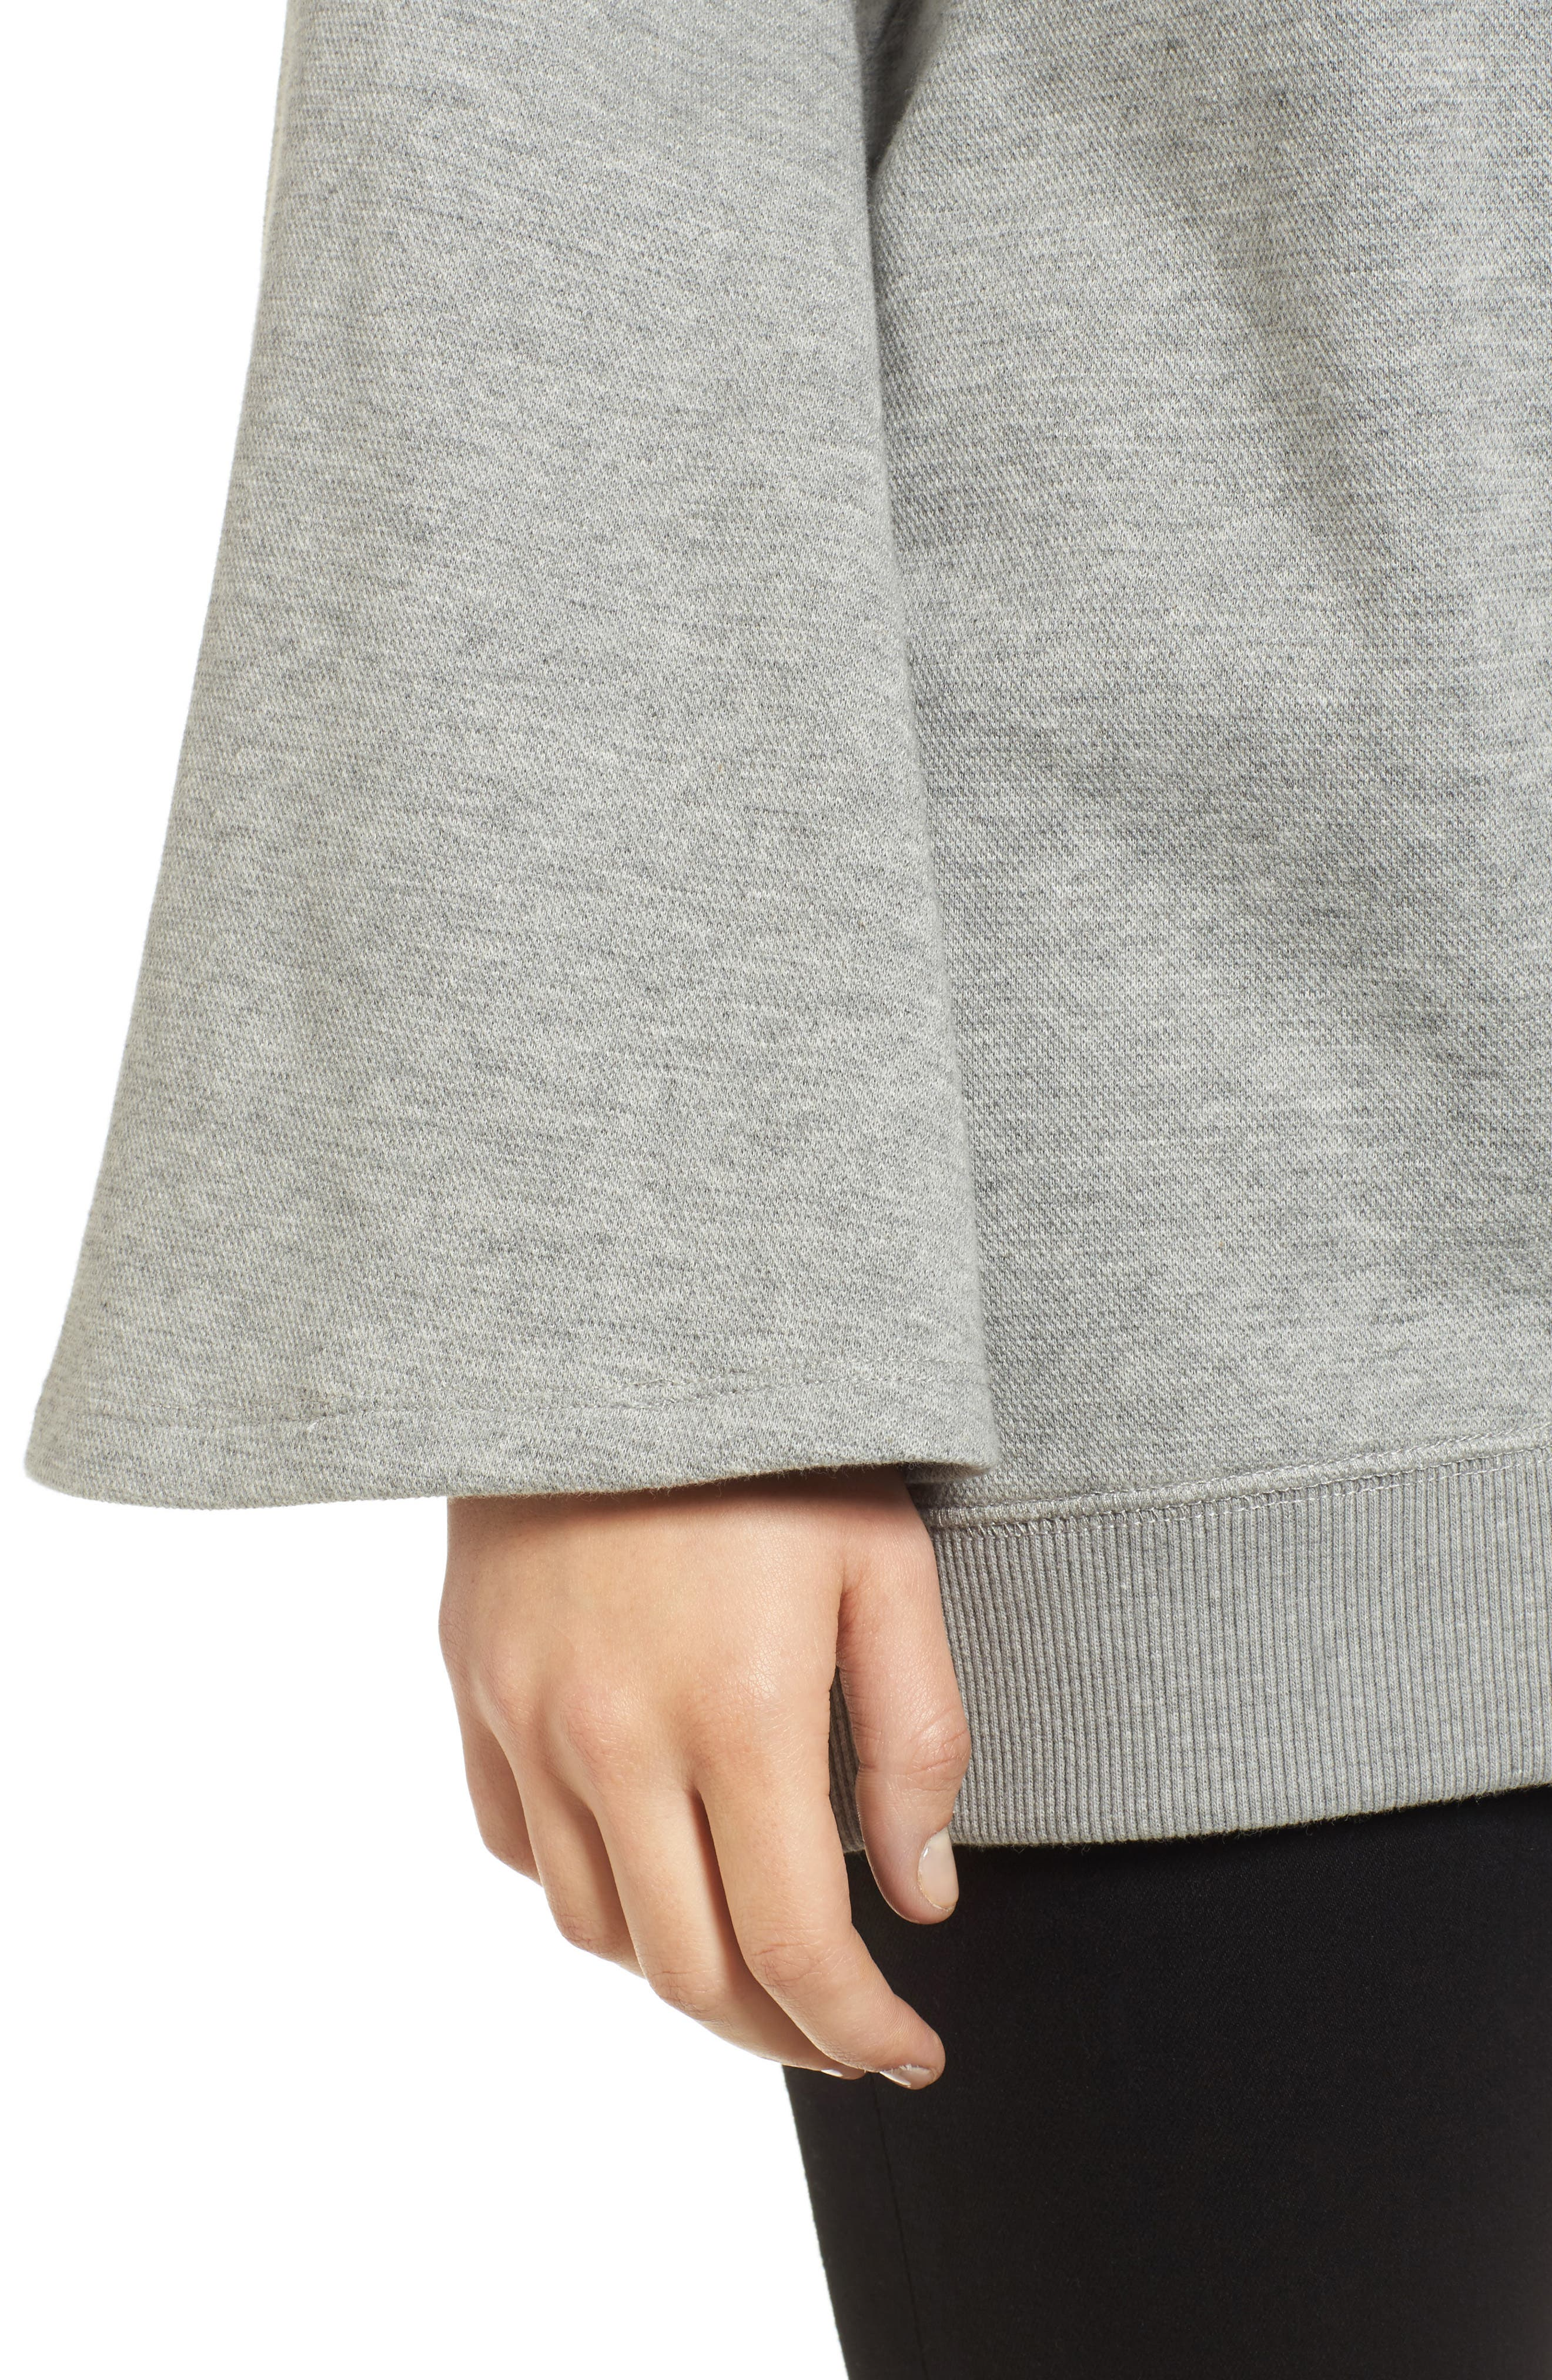 Bell Sleeve Ribbed Sweatshirt,                             Alternate thumbnail 4, color,                             Heather Gray Bros